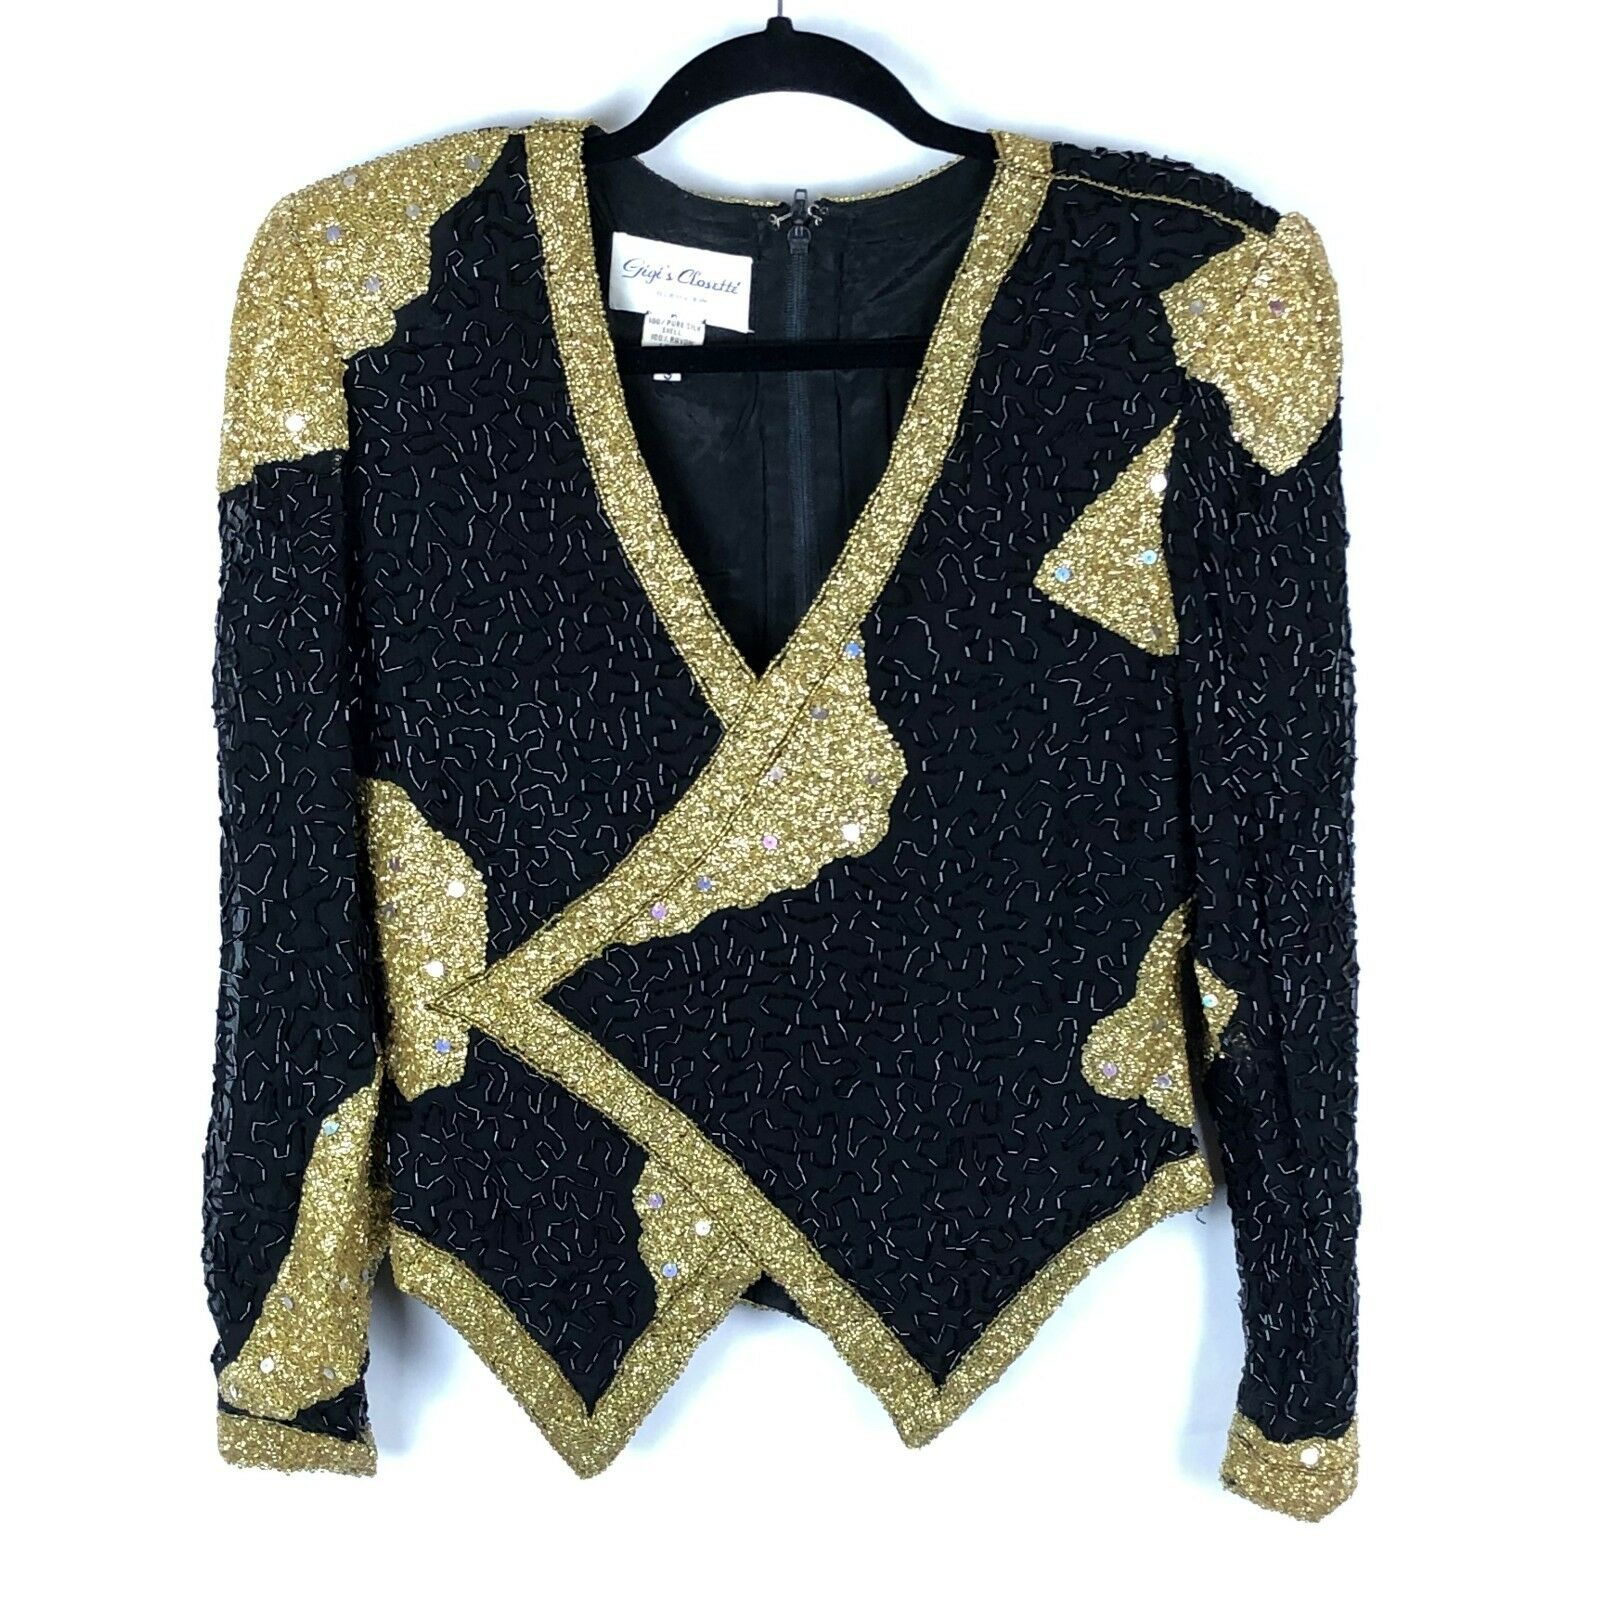 Vintage 80s Beaded Top Silk schwarz Gold Long Sleeve Glam Trophy Plunging Neckline